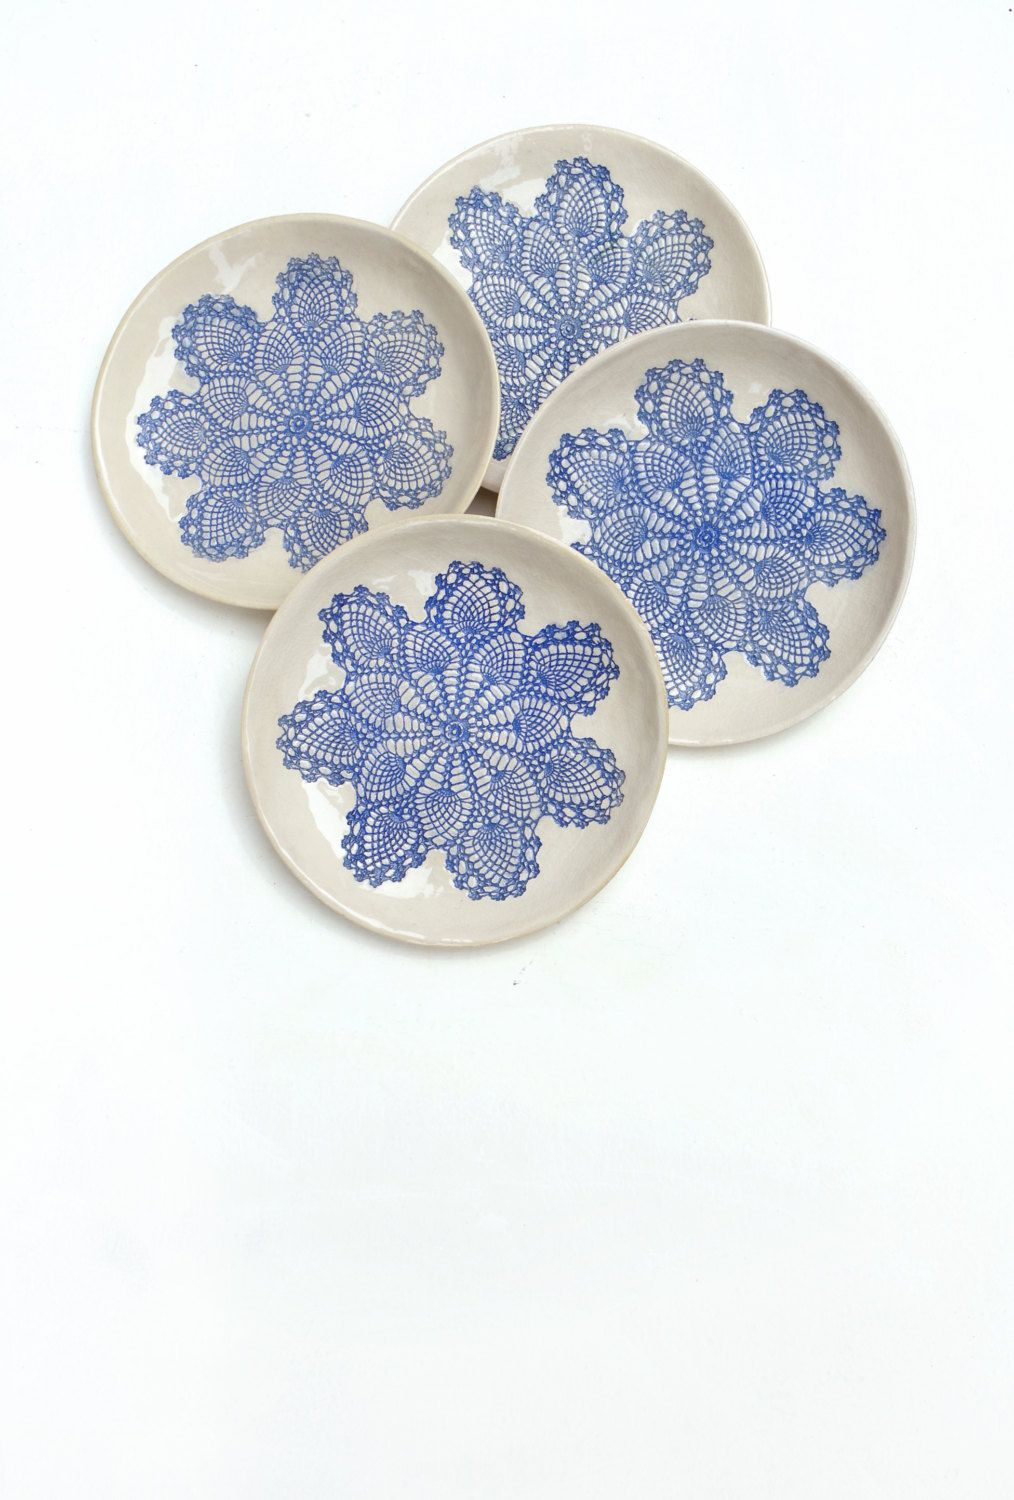 deco serving ceramic plate set lace in blue and white by Tanja Shpal ...